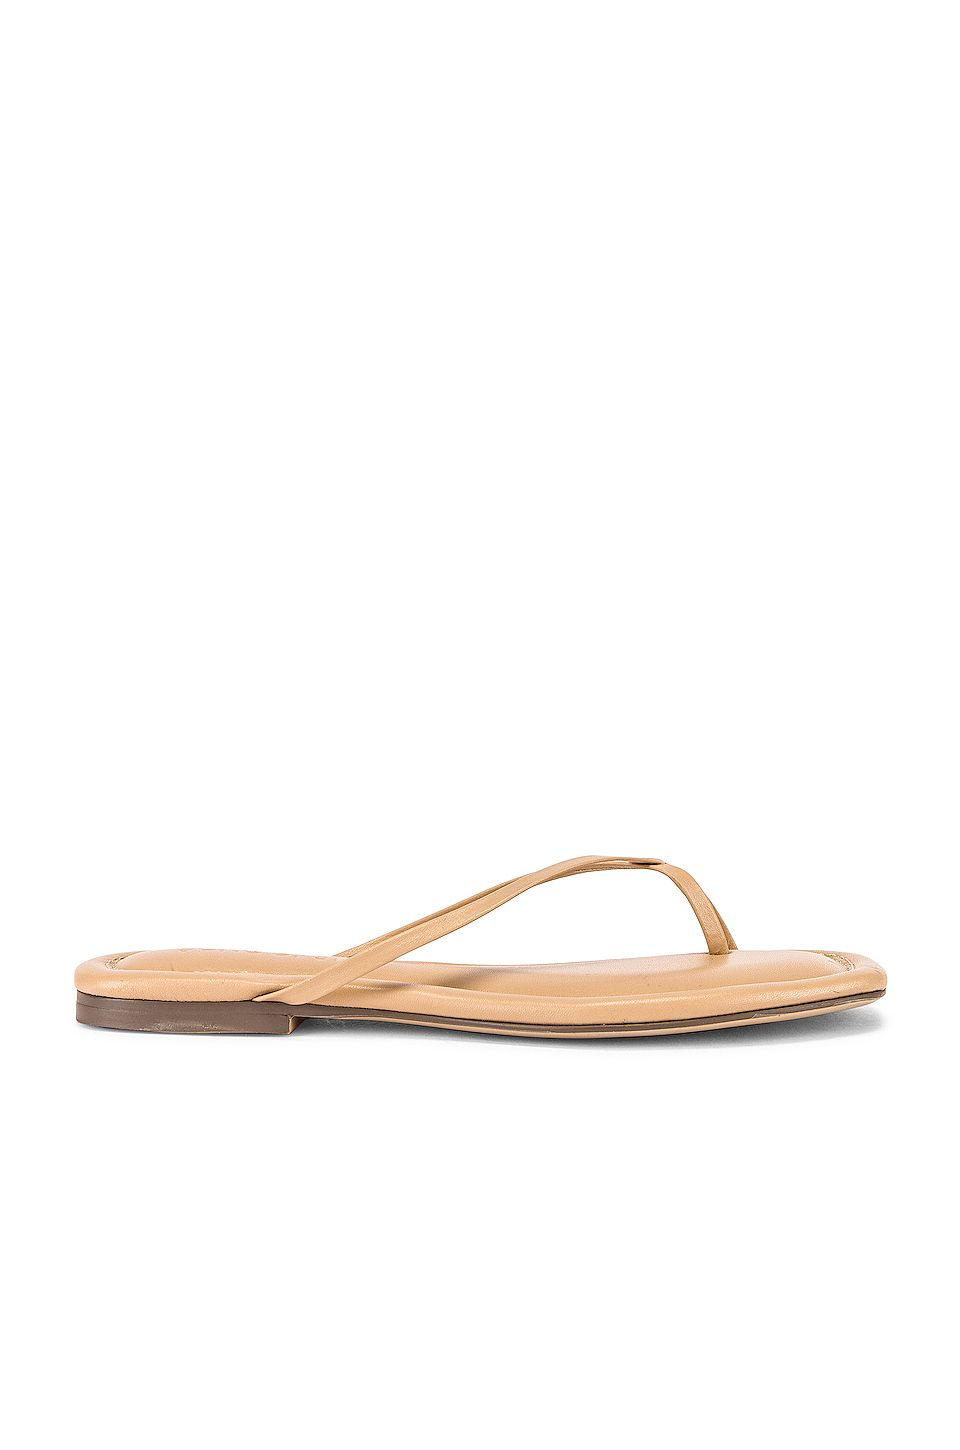 Emery Sandal in Nude